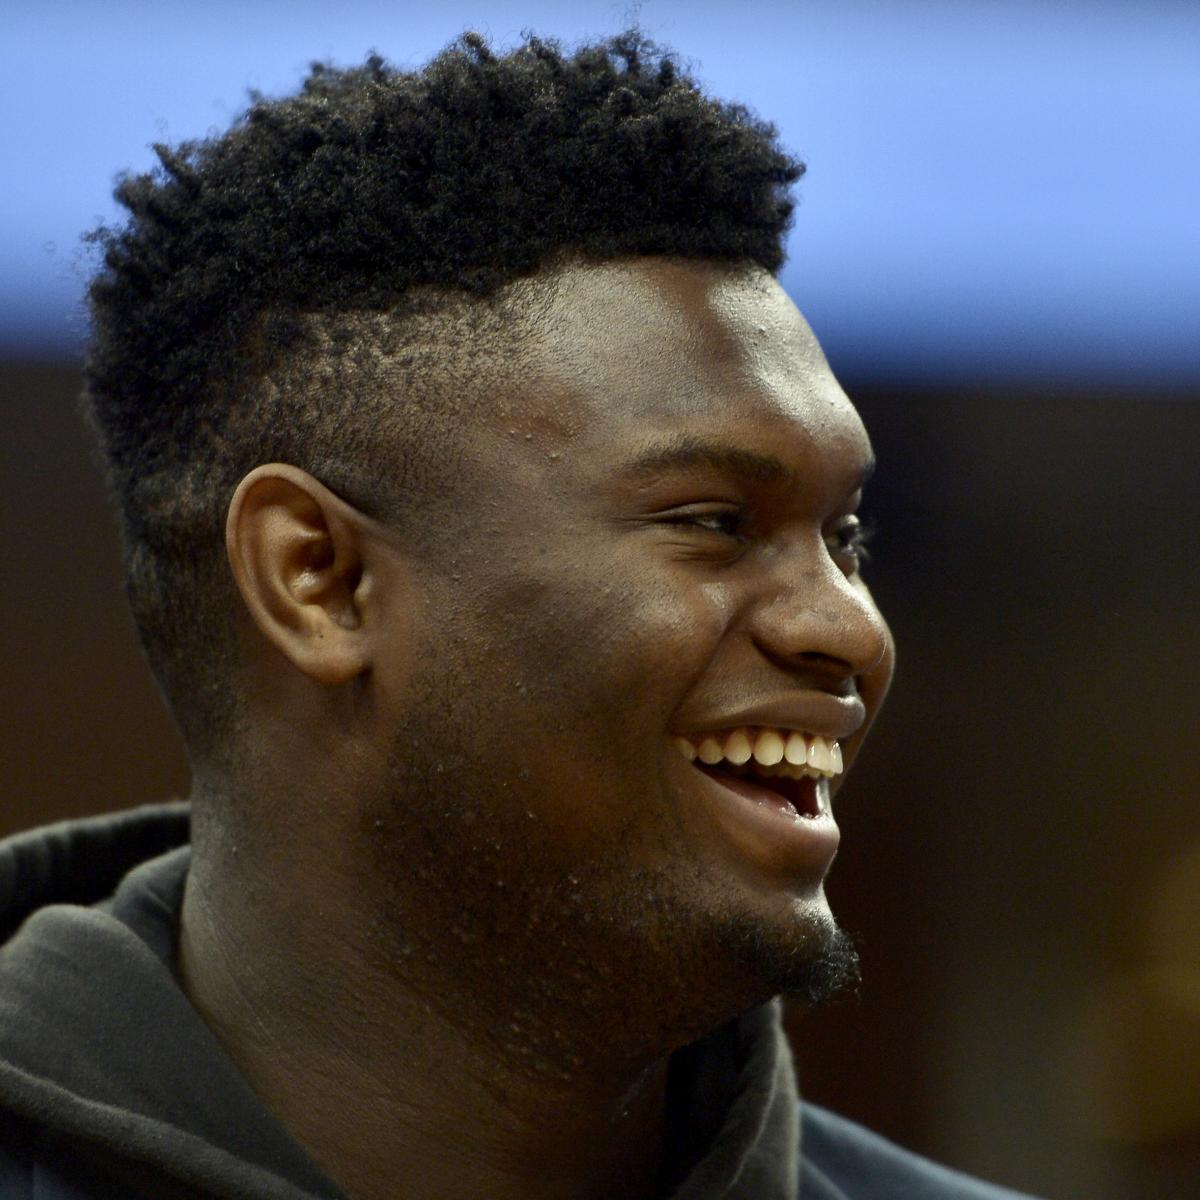 NBA Rumors: Zion Williamson to Start in Pelicans Debut, No Minutes Restriction